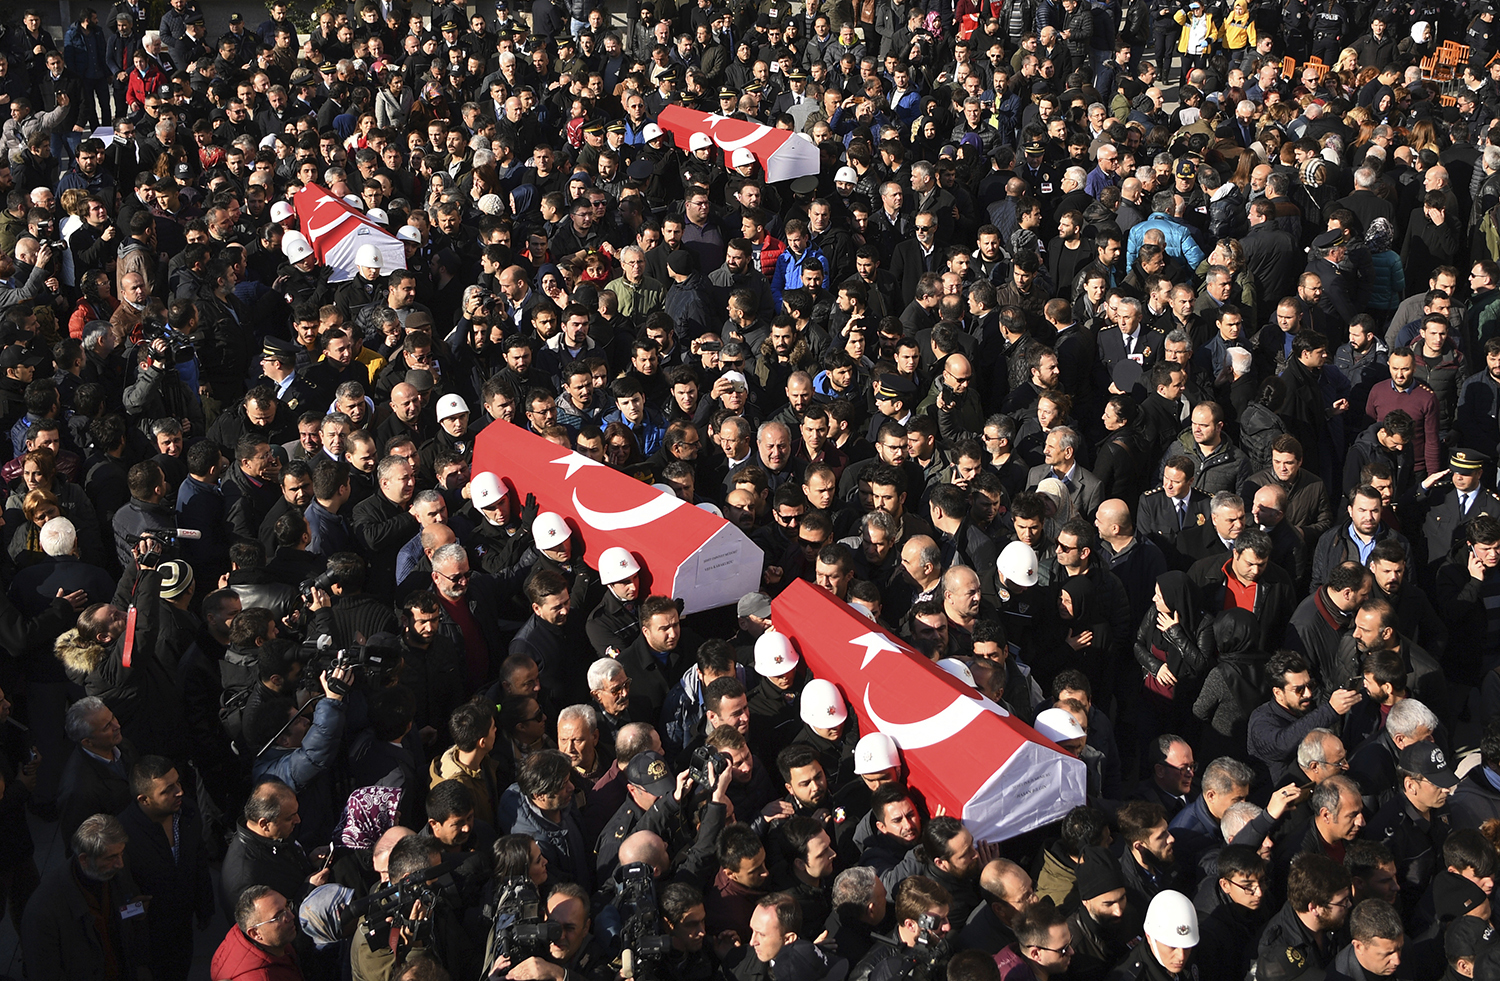 People carry the coffins of bomb victims during a memorial in Istanbul, Sunday, Dec. 11, 2016, for police officers killed outside the Besiktas football club stadium Vodafone Arena late Saturday. Family members, Turkey's President Recep Tayyip Erdogan, ministers and colleagues attended the memorial as Turkey declared a national day of mourning Sunday after twin blasts in Istanbul killed dozens of people and wounded many others near a soccer stadium. Turkish authorities have banned distribution of images relating to the Istanbul explosions within Turkey. (AP Photo)